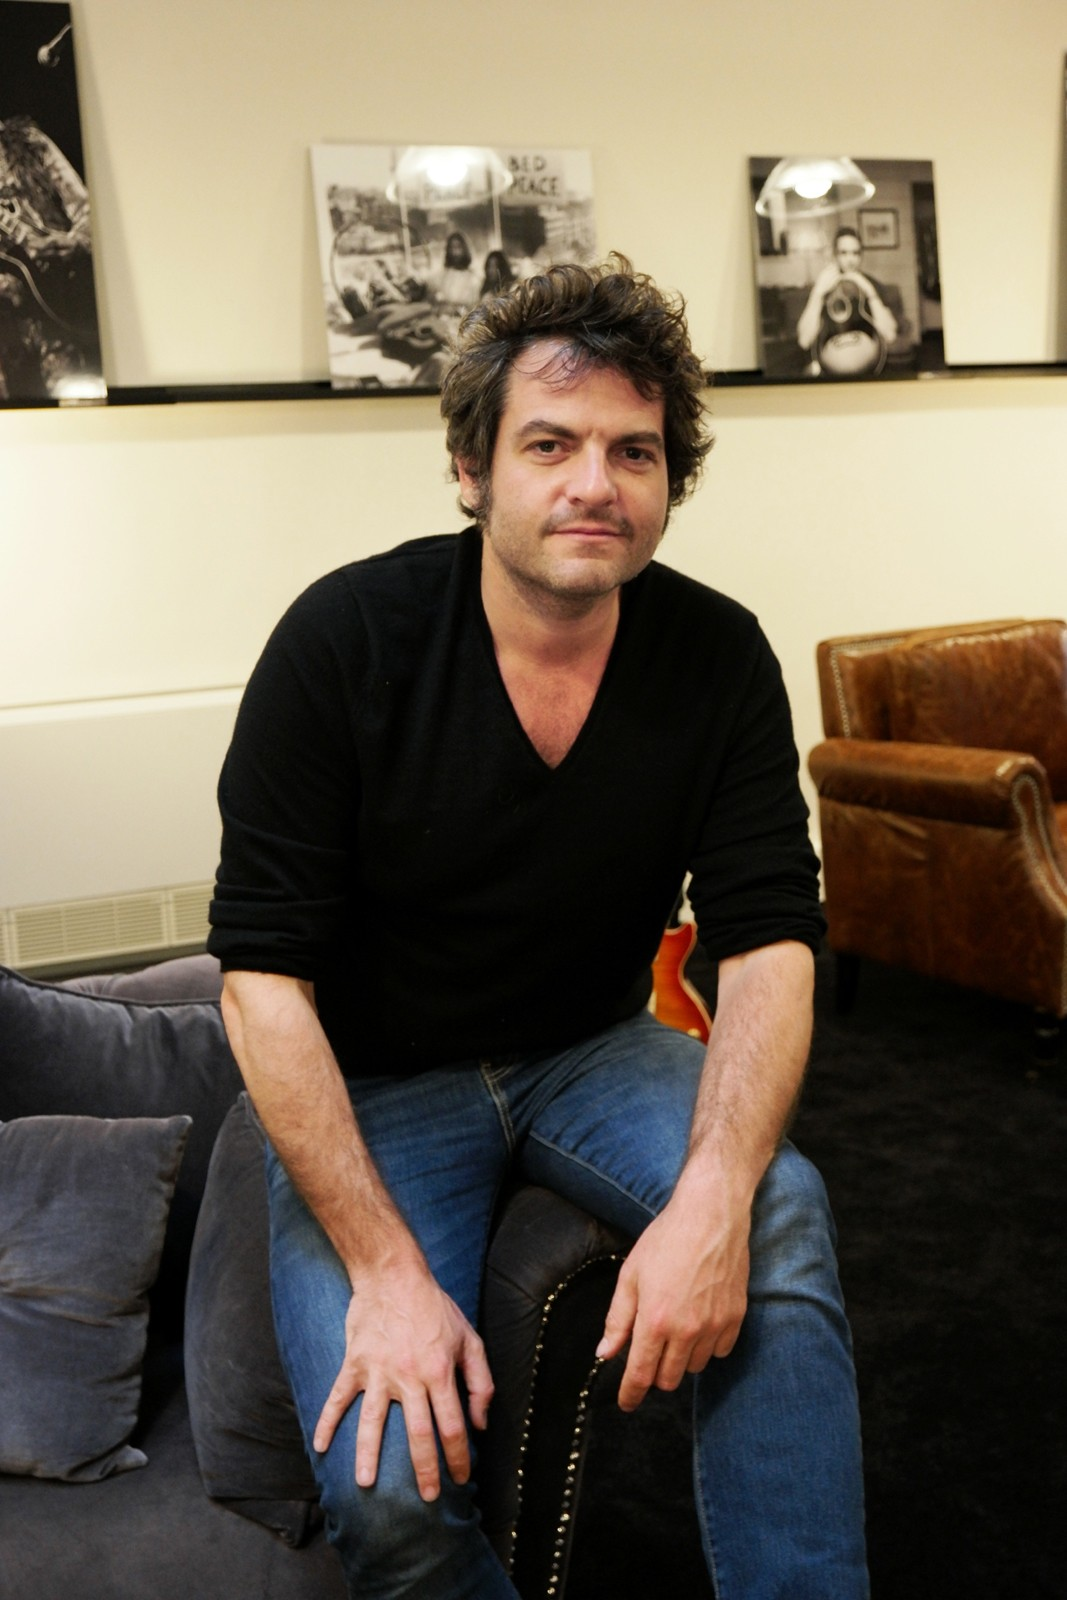 Matthieu Chedid en interview pour La BO 2 -M- rêve musical illustré par Matthias Picard éditions 2024 photo united states of paris blog usofparis showroom Gibson